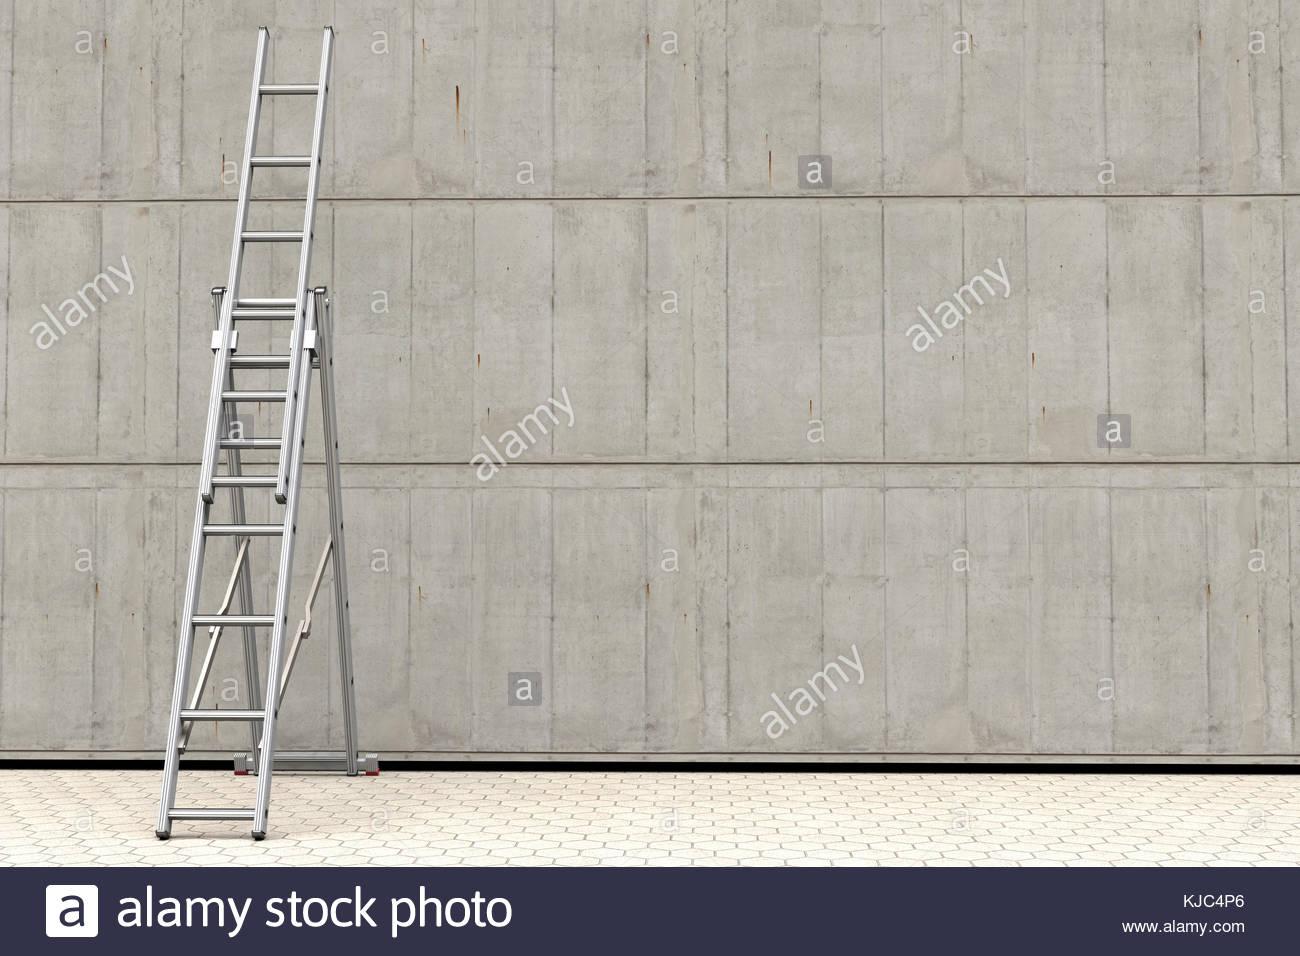 Digital illustration of a portable ladder against a concrete wall - Stock Image